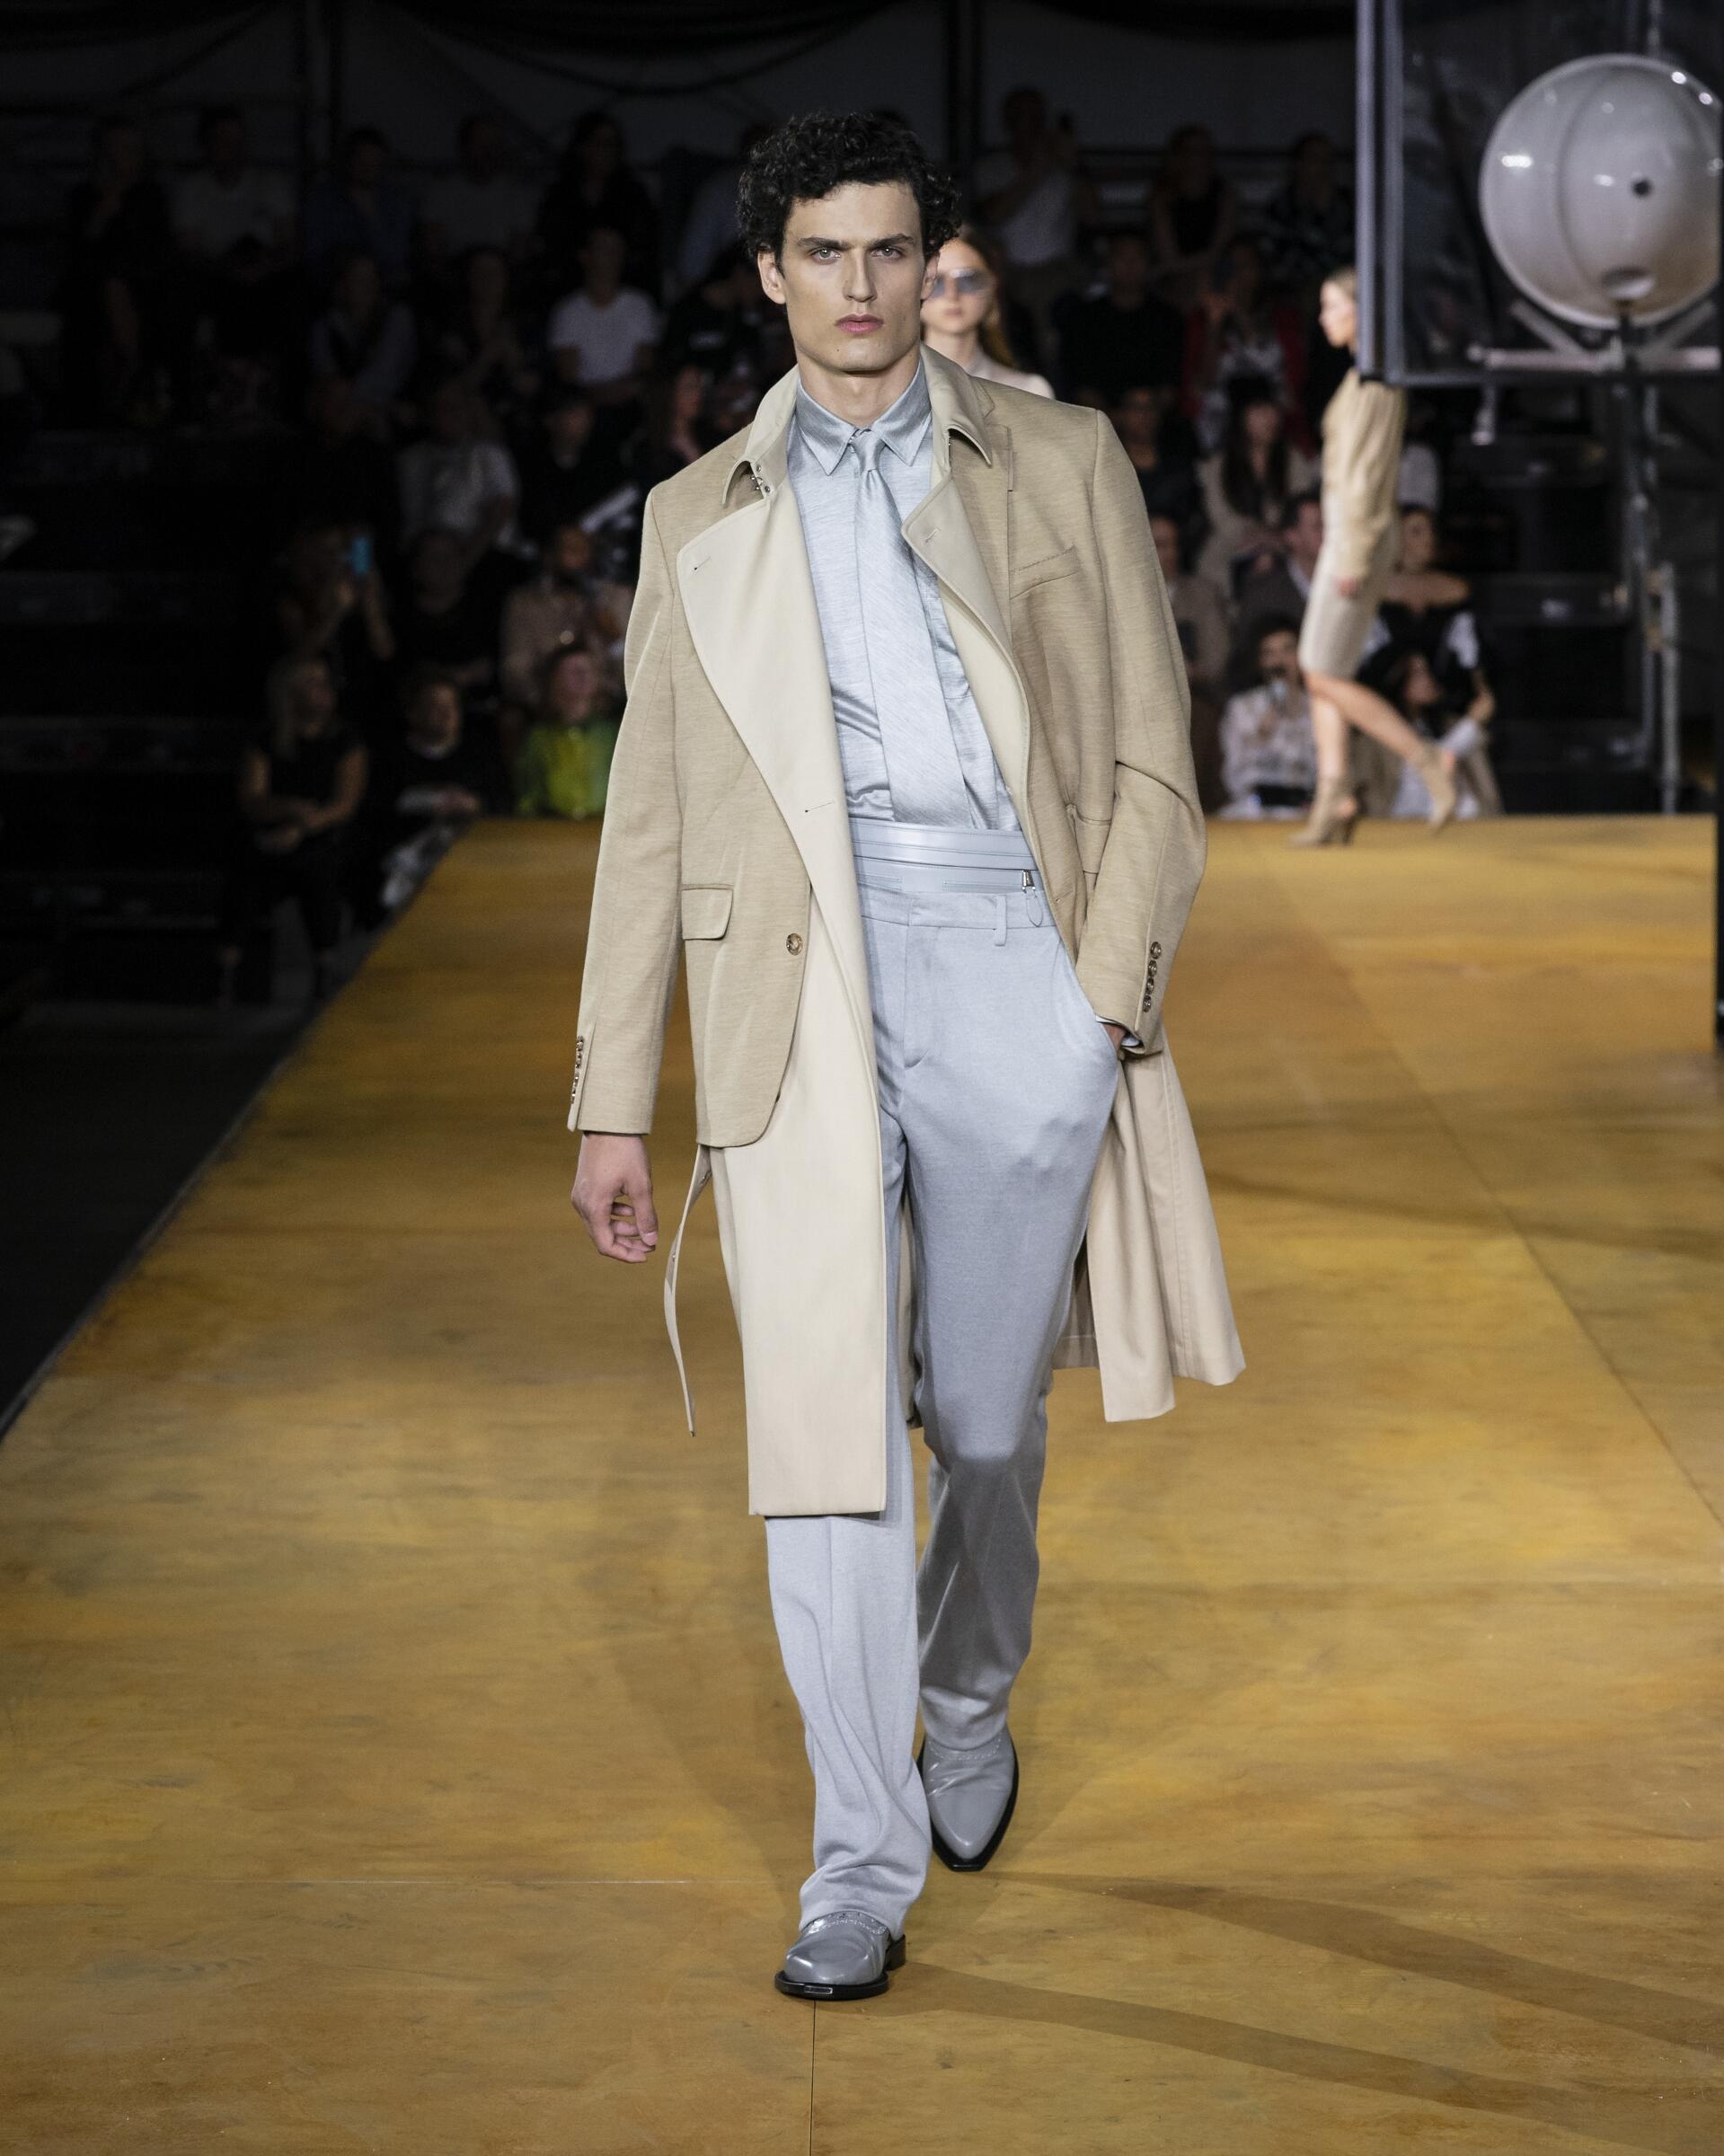 Burberry Menswear Summer 2020 Catwalk